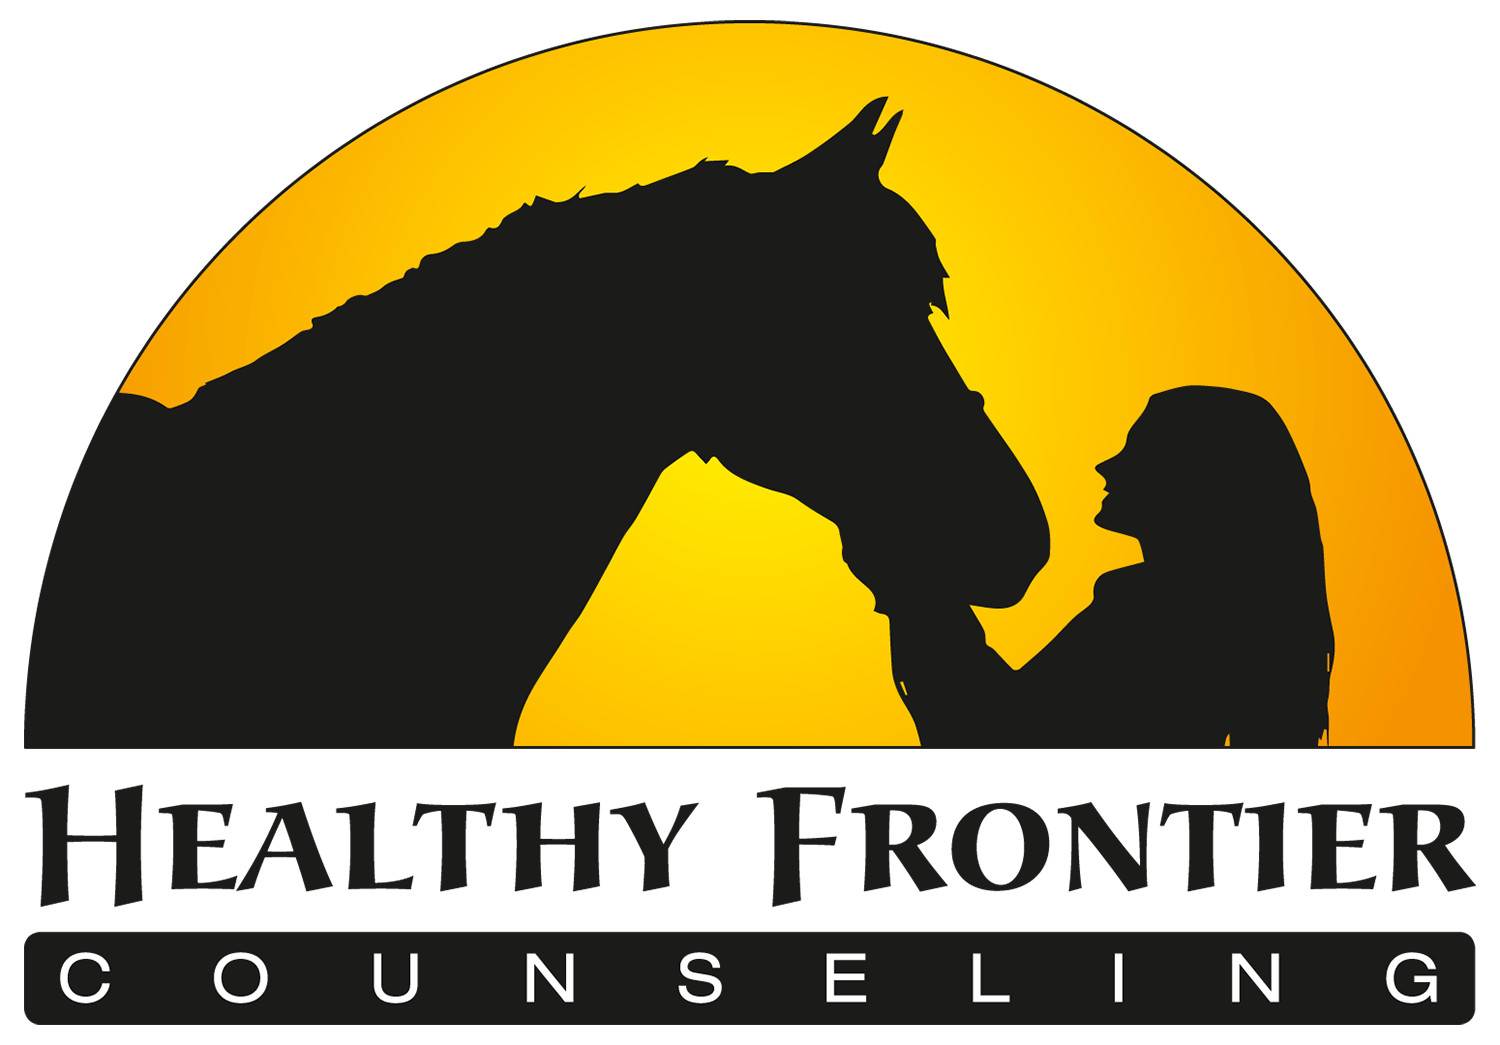 Our team healthy frontier. Counseling clipart business support